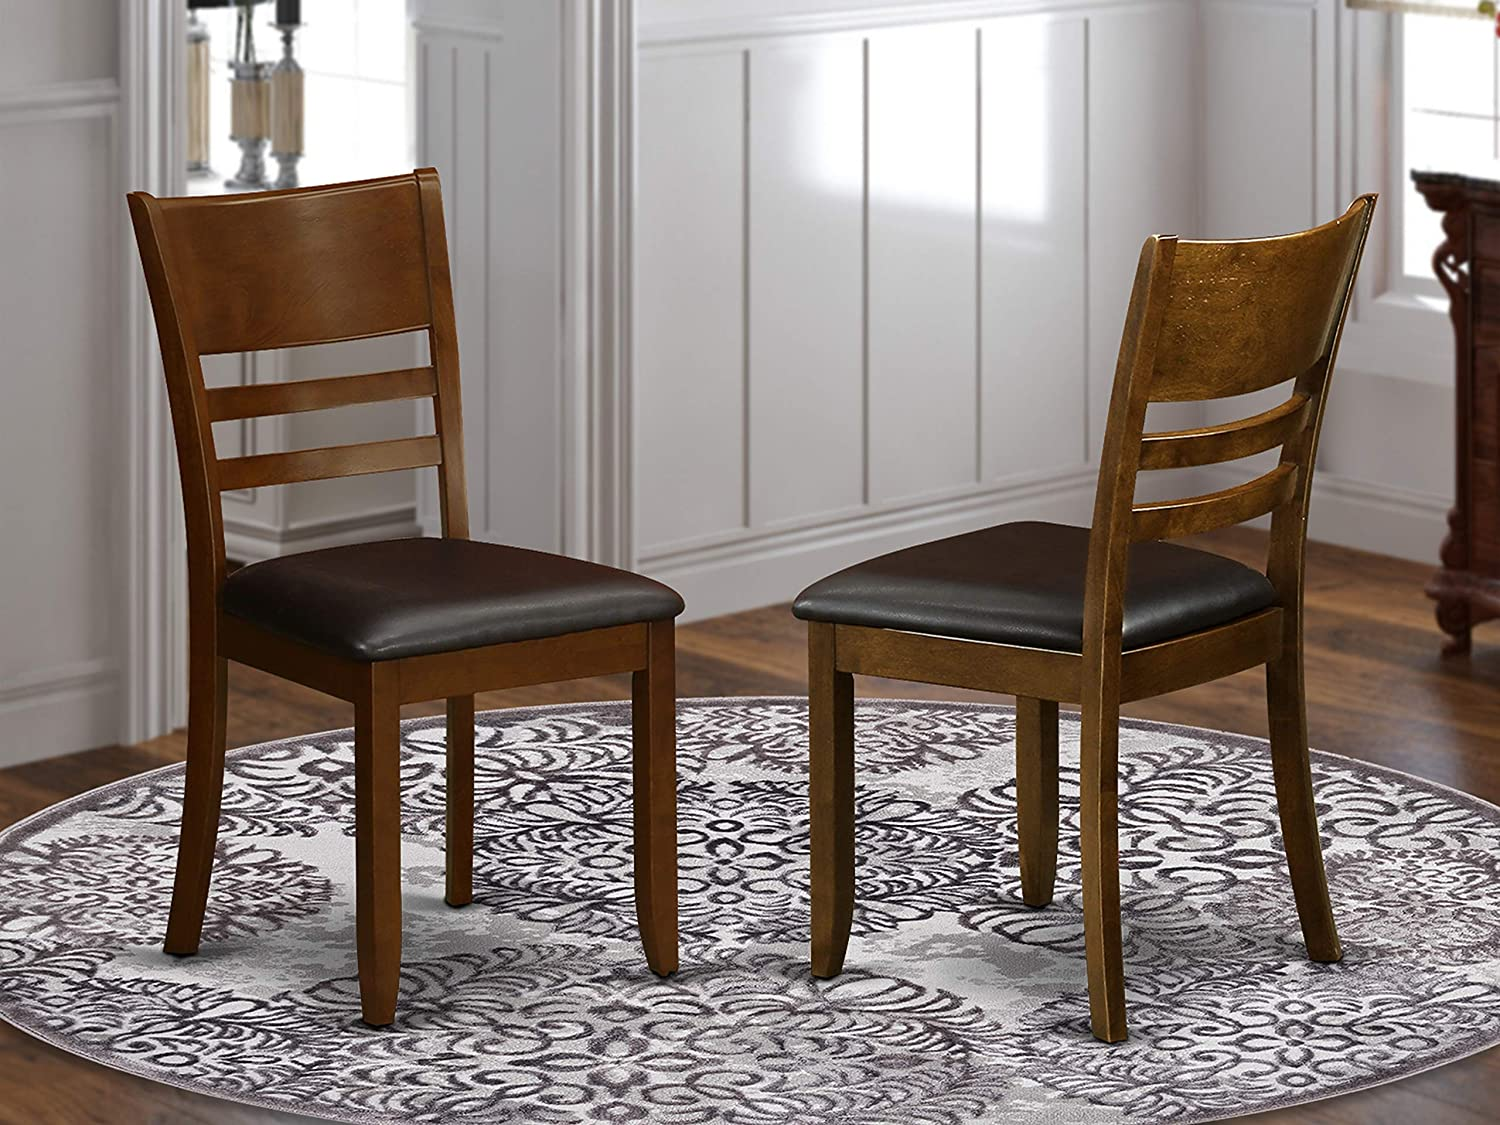 East West Furniture Lynfield dining chairs - Faux Leather Seat and Espresso Solid wood Frame dining room chair Set of 2